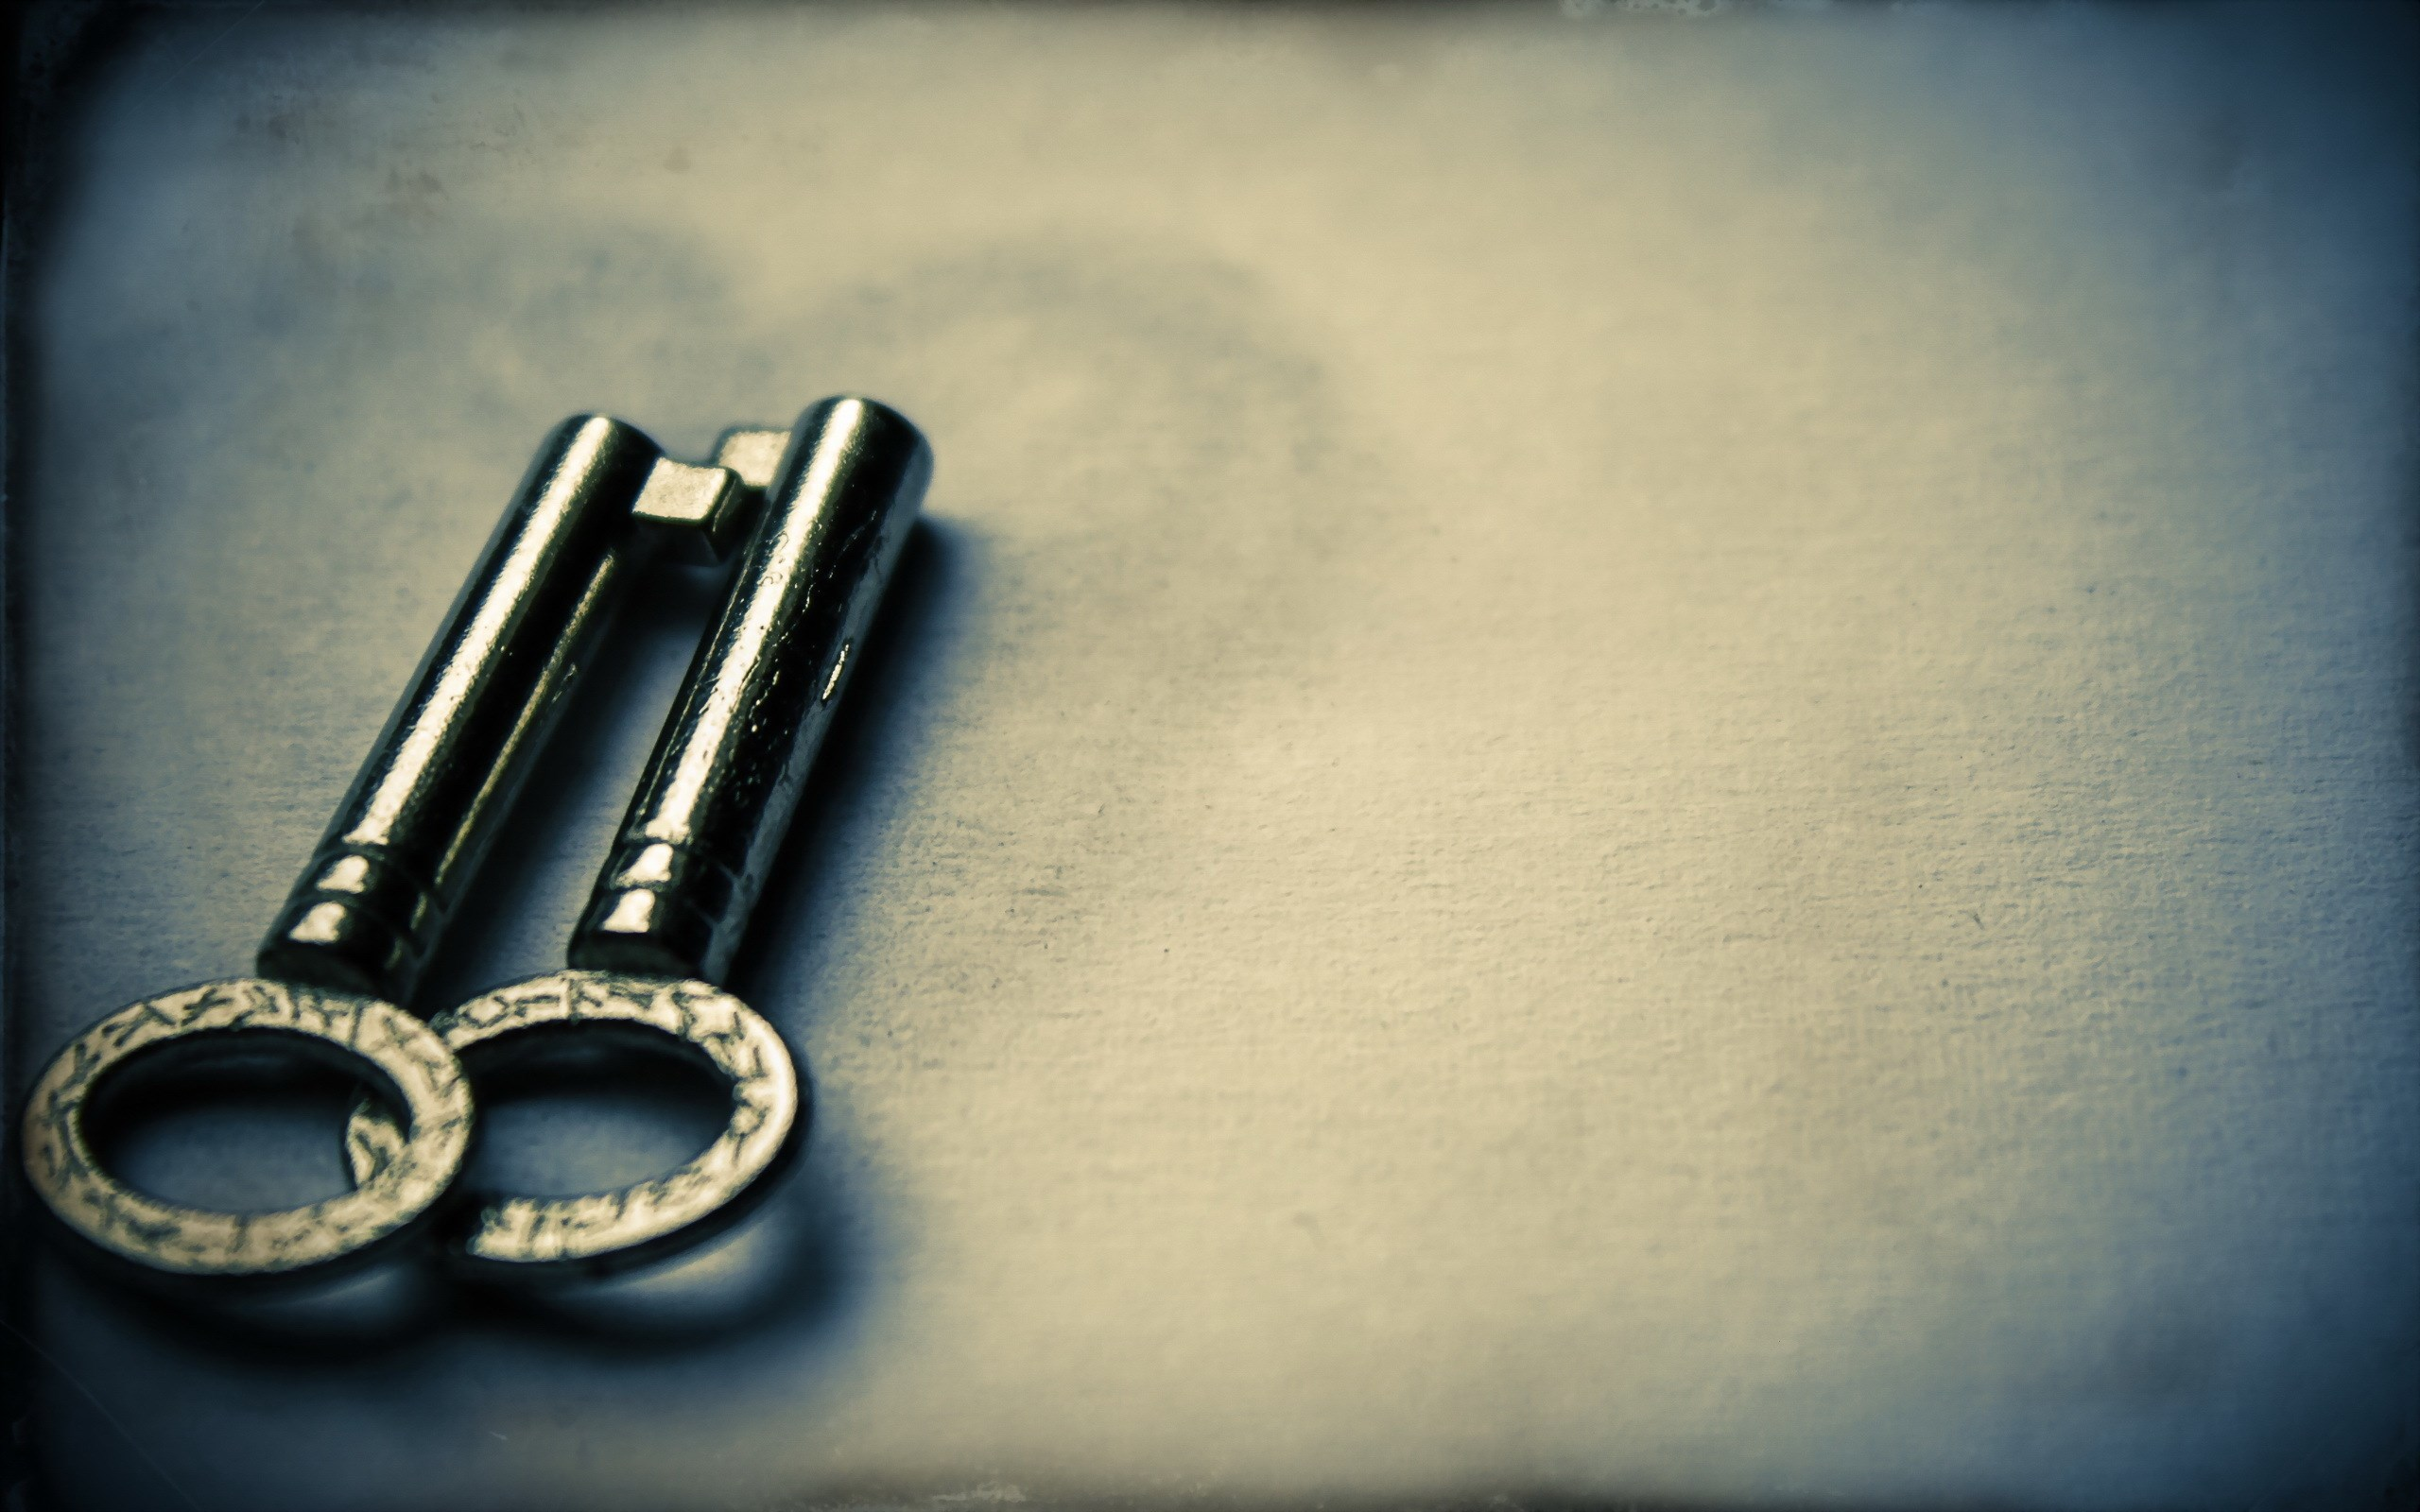 Video wallpaper key wallpapersafari for What can you do with old keys